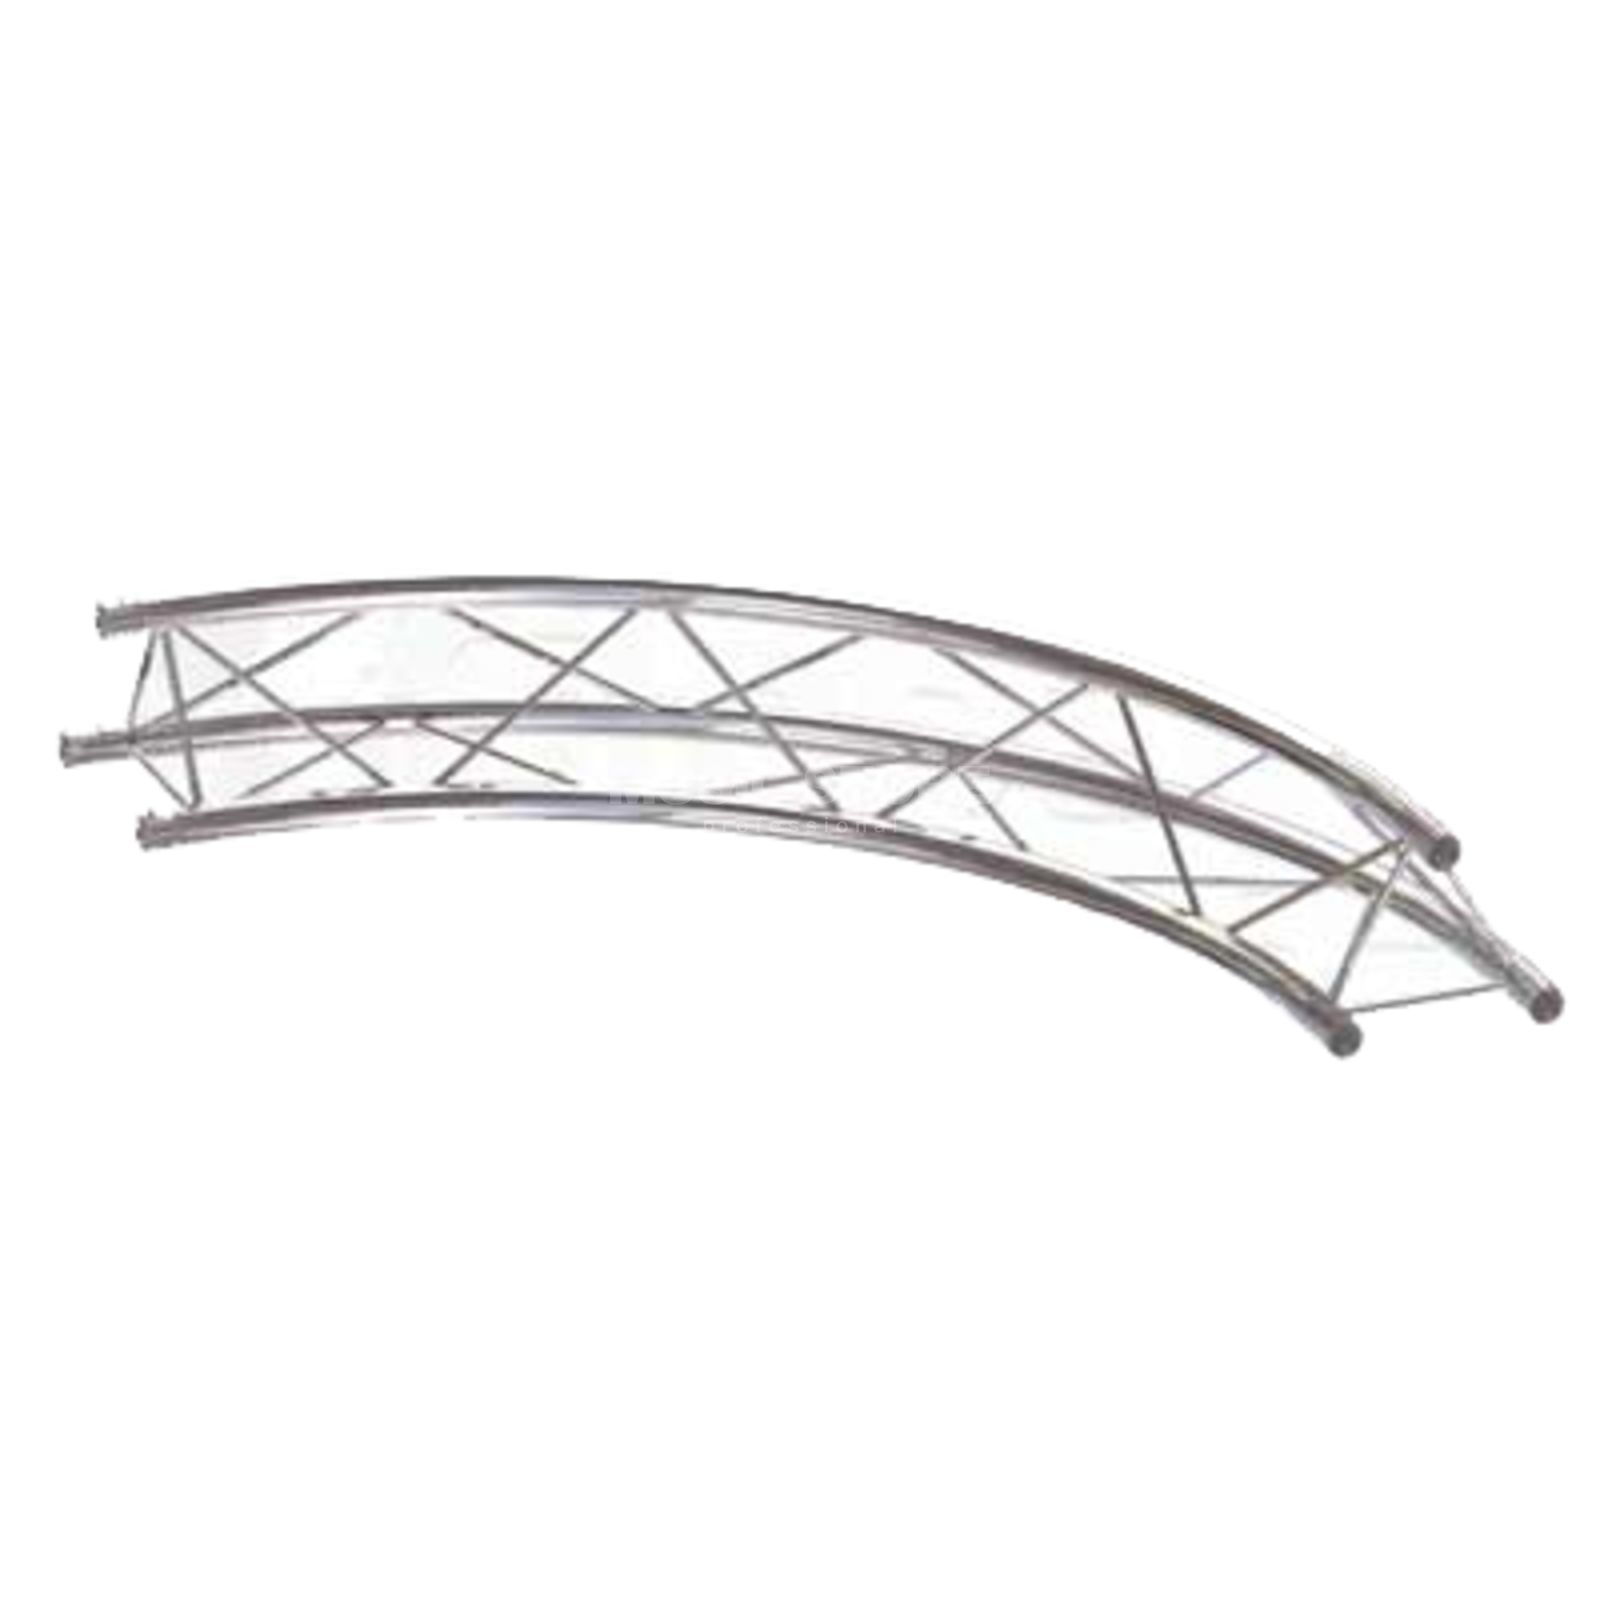 Global Truss F23 Decotruss Circular 30° 10m Produktbillede